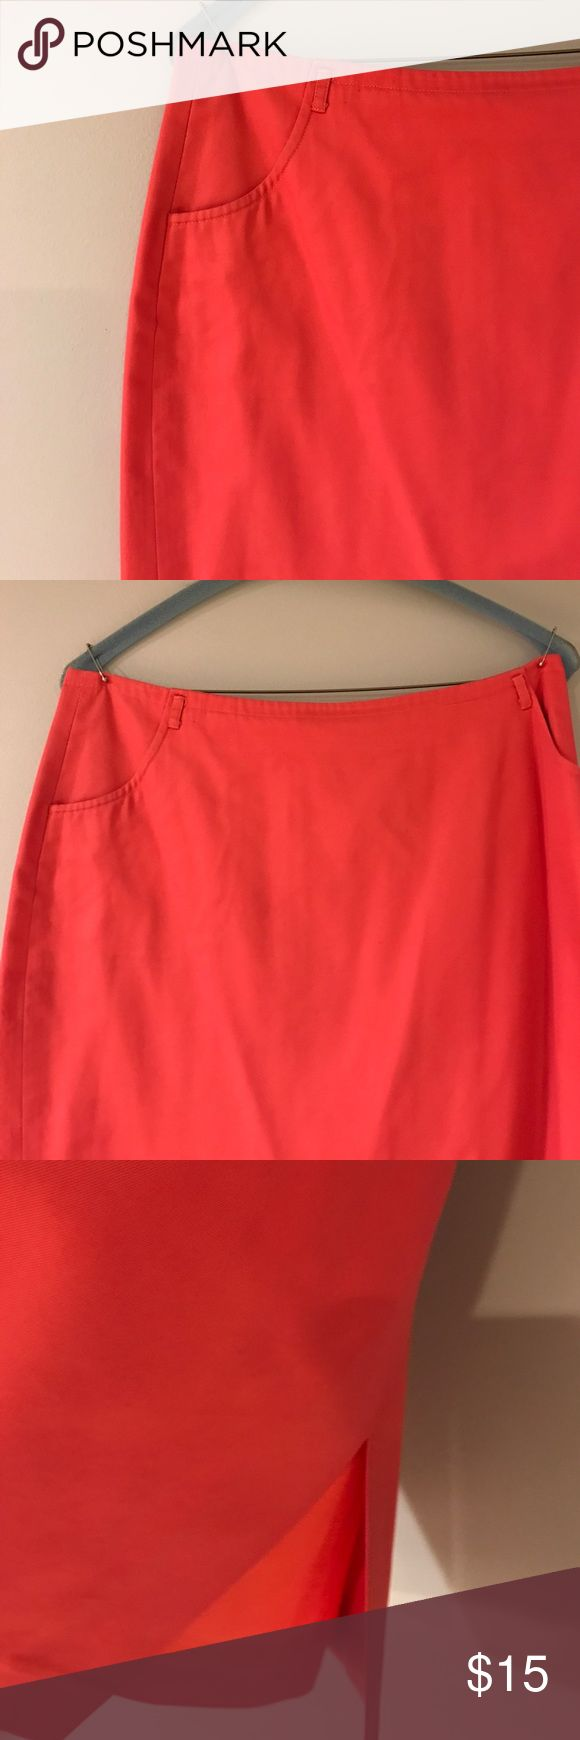 Coral Pencil Skirt Pockets! Great for spring and summer. Lightweight. Lined. 14 inches across waist, 25.5 inches long. Has belt loops but i got it without a belt. Reposh. Small pen marking on the front. J. Crew Skirts Pencil